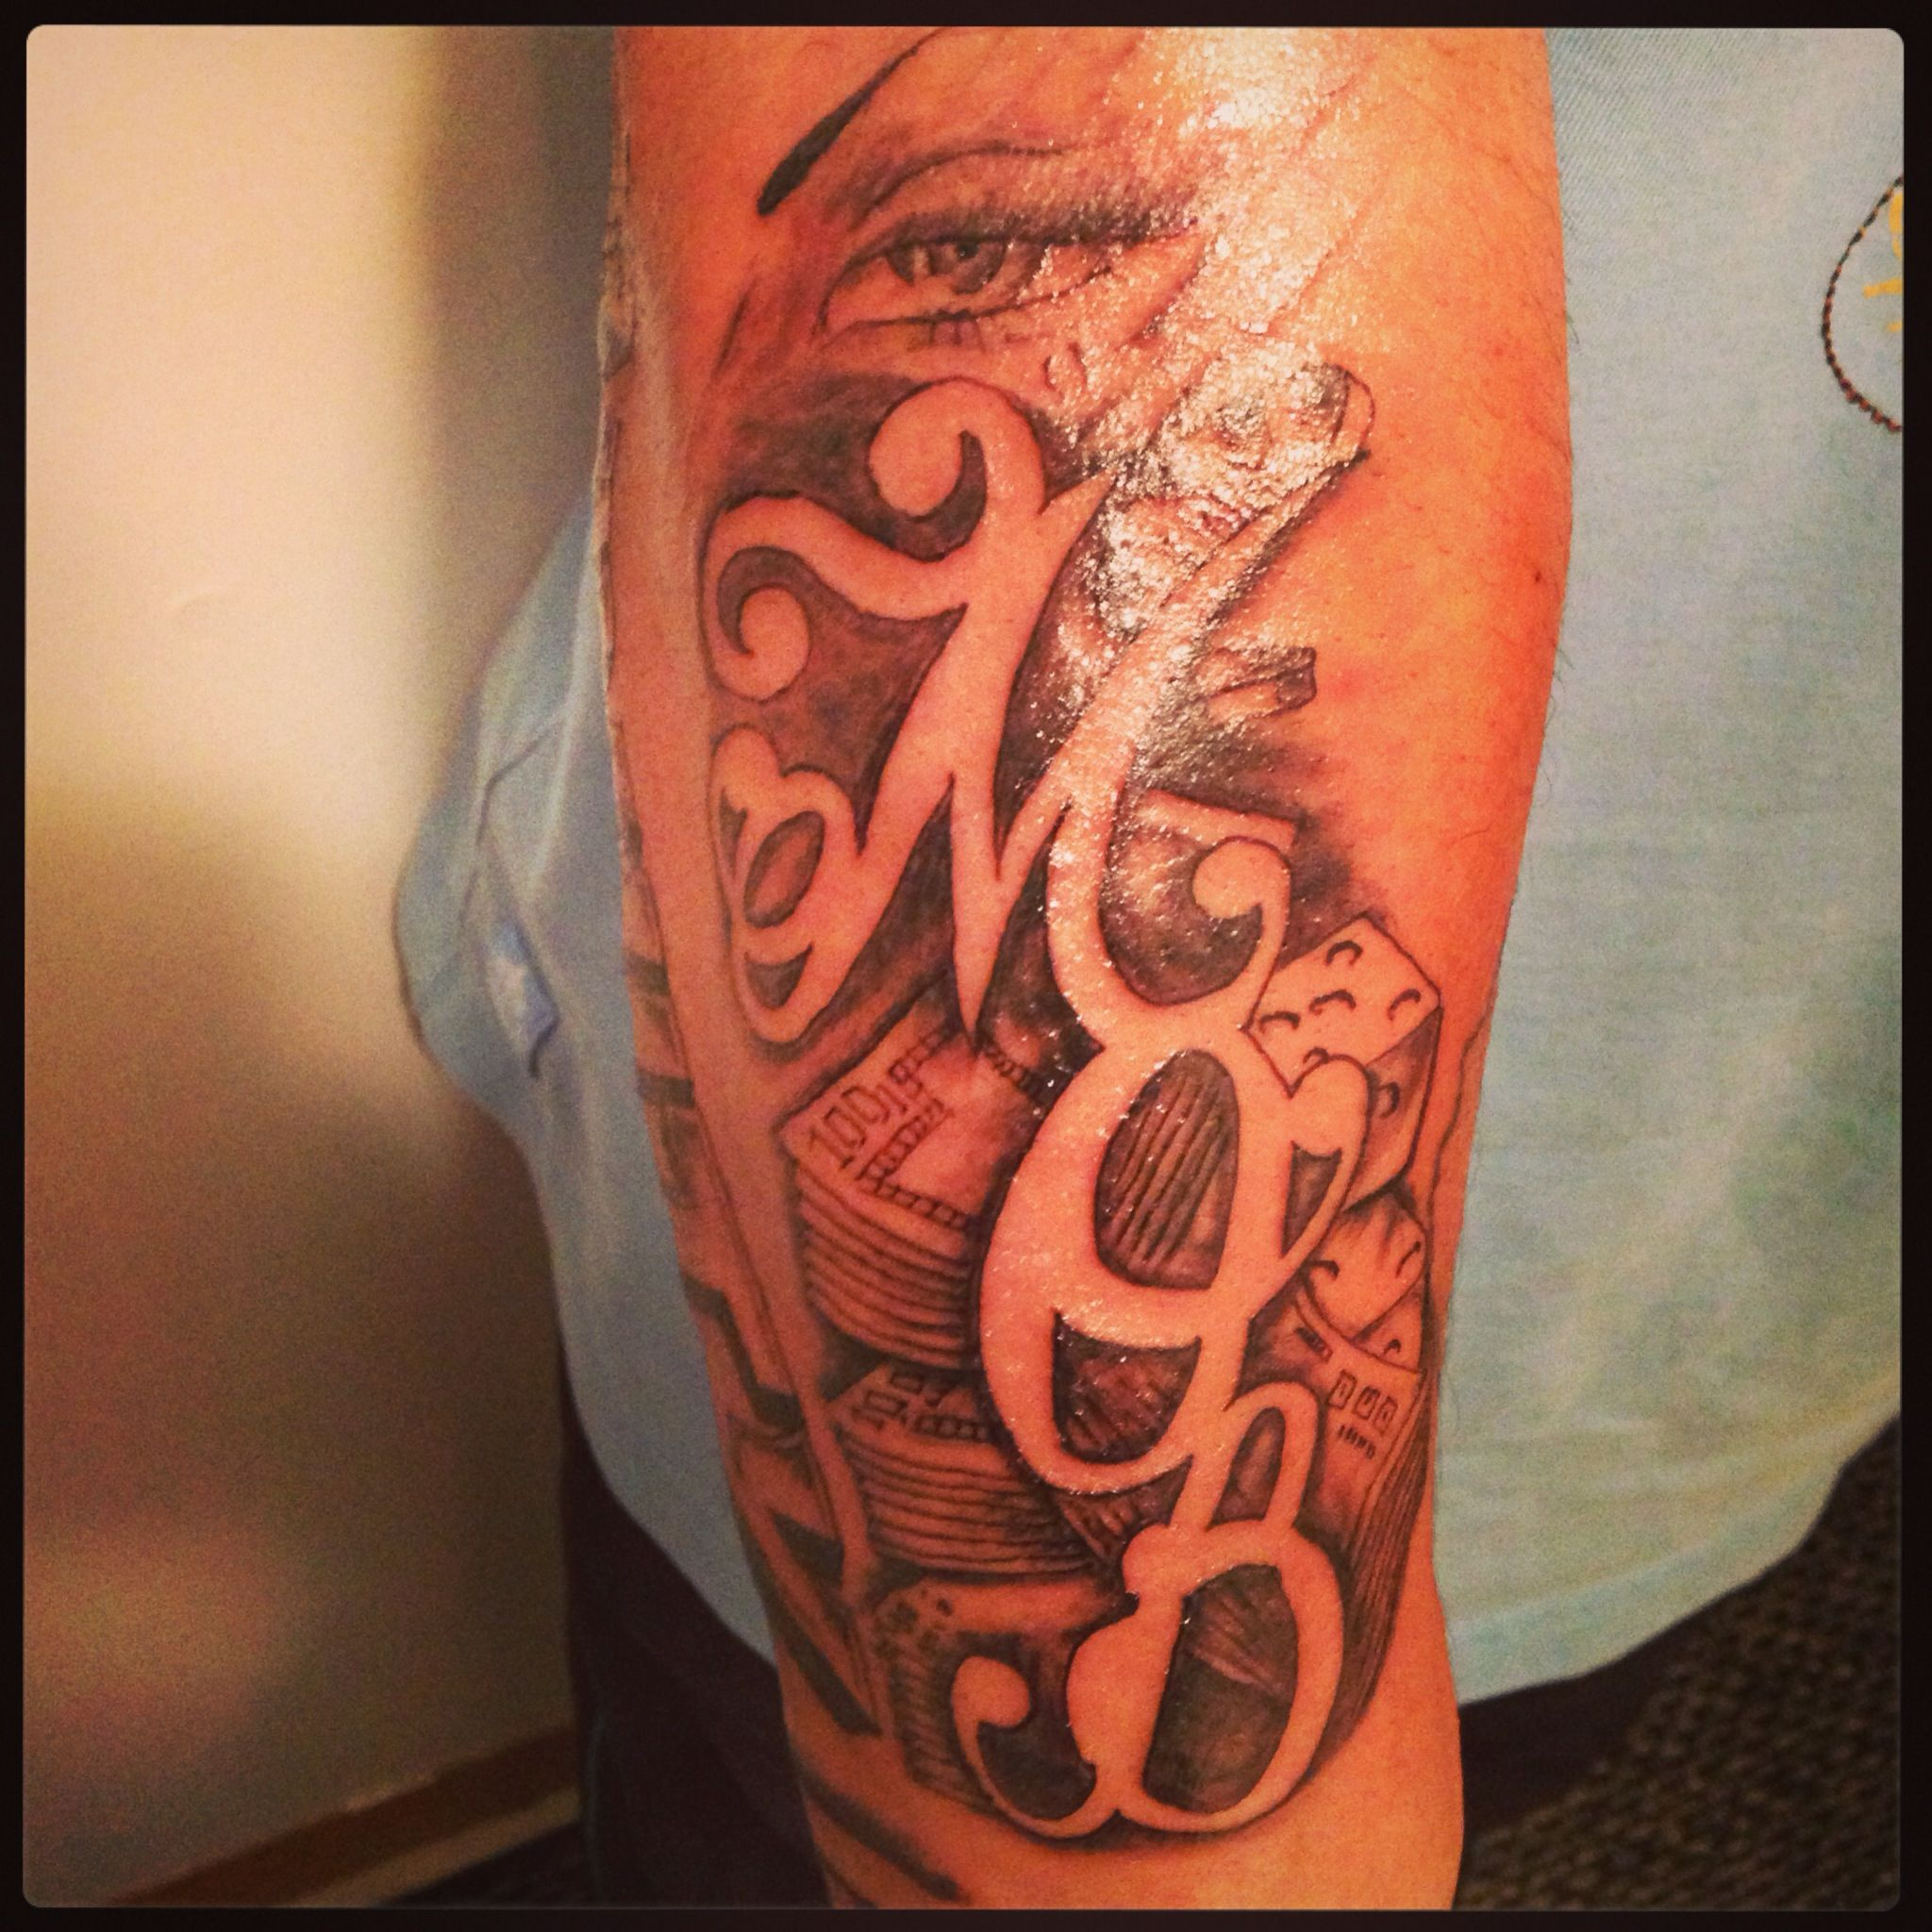 Quot M O B Quot Money Over B S Tattoo By Keno G Money border=